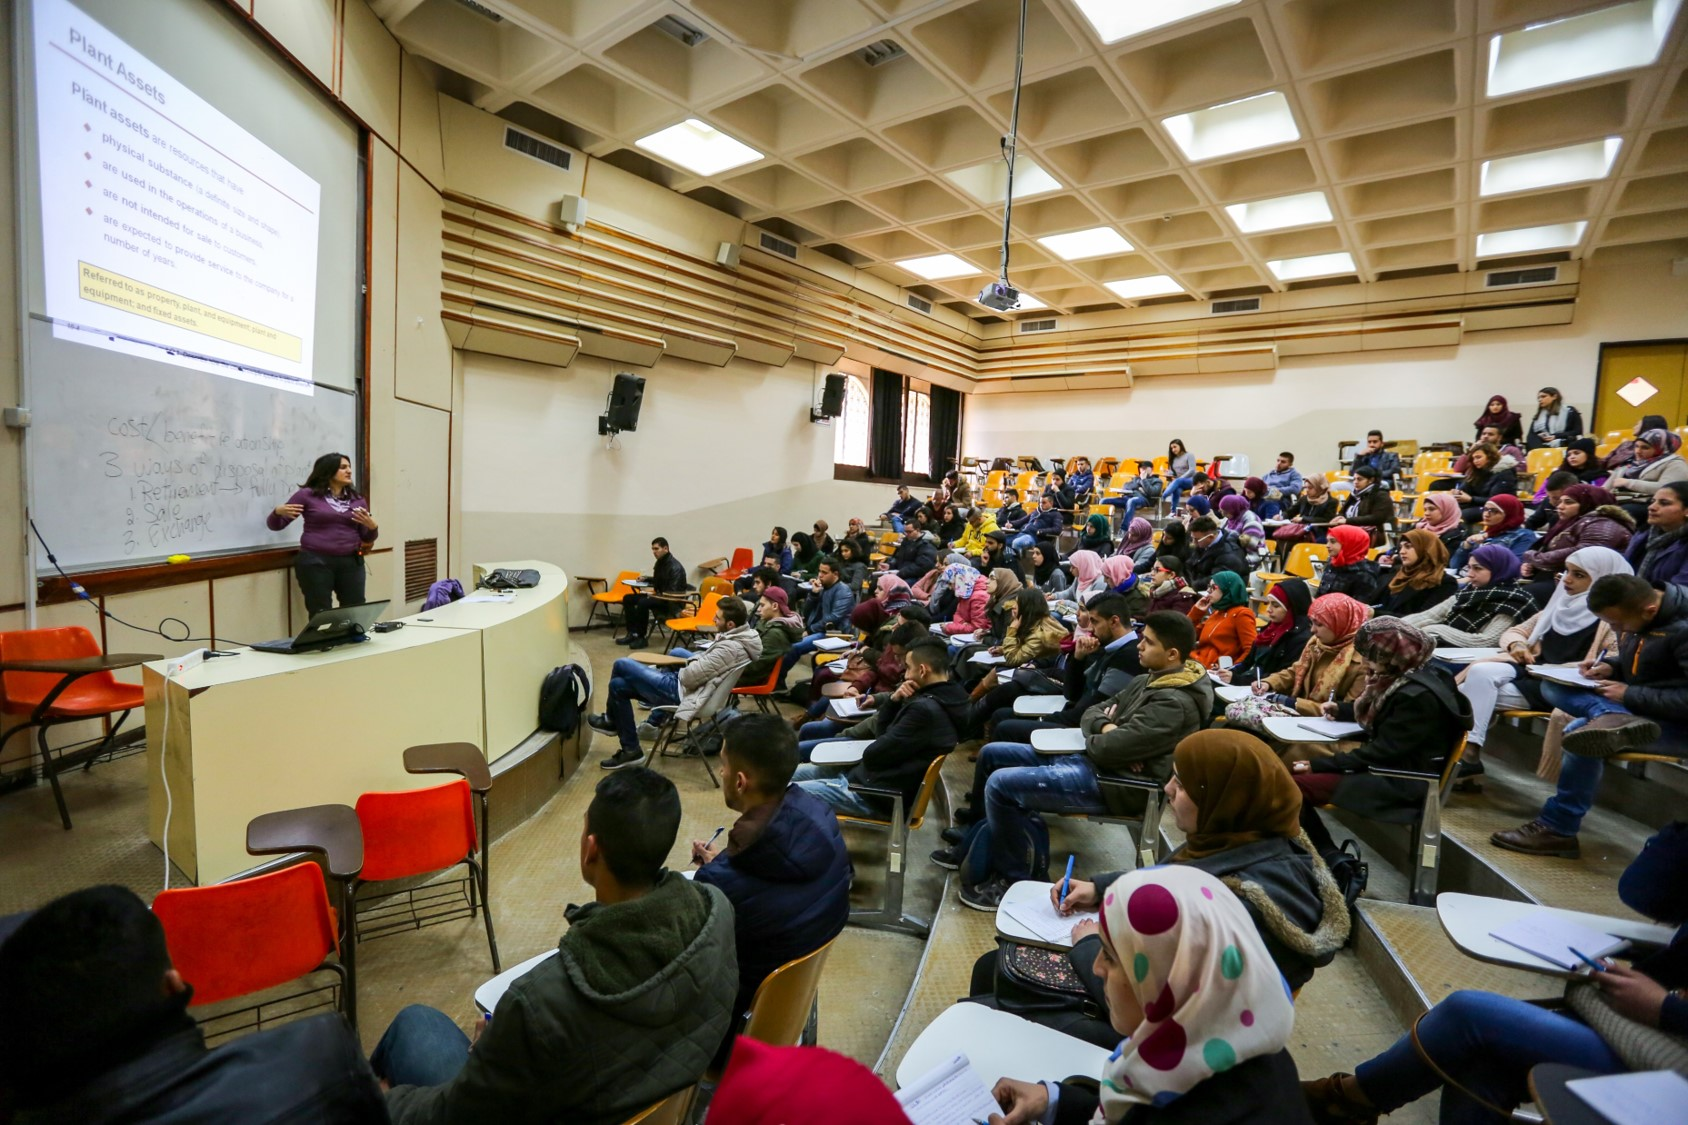 Palestinian Universities Say Israeli Restrictions Force